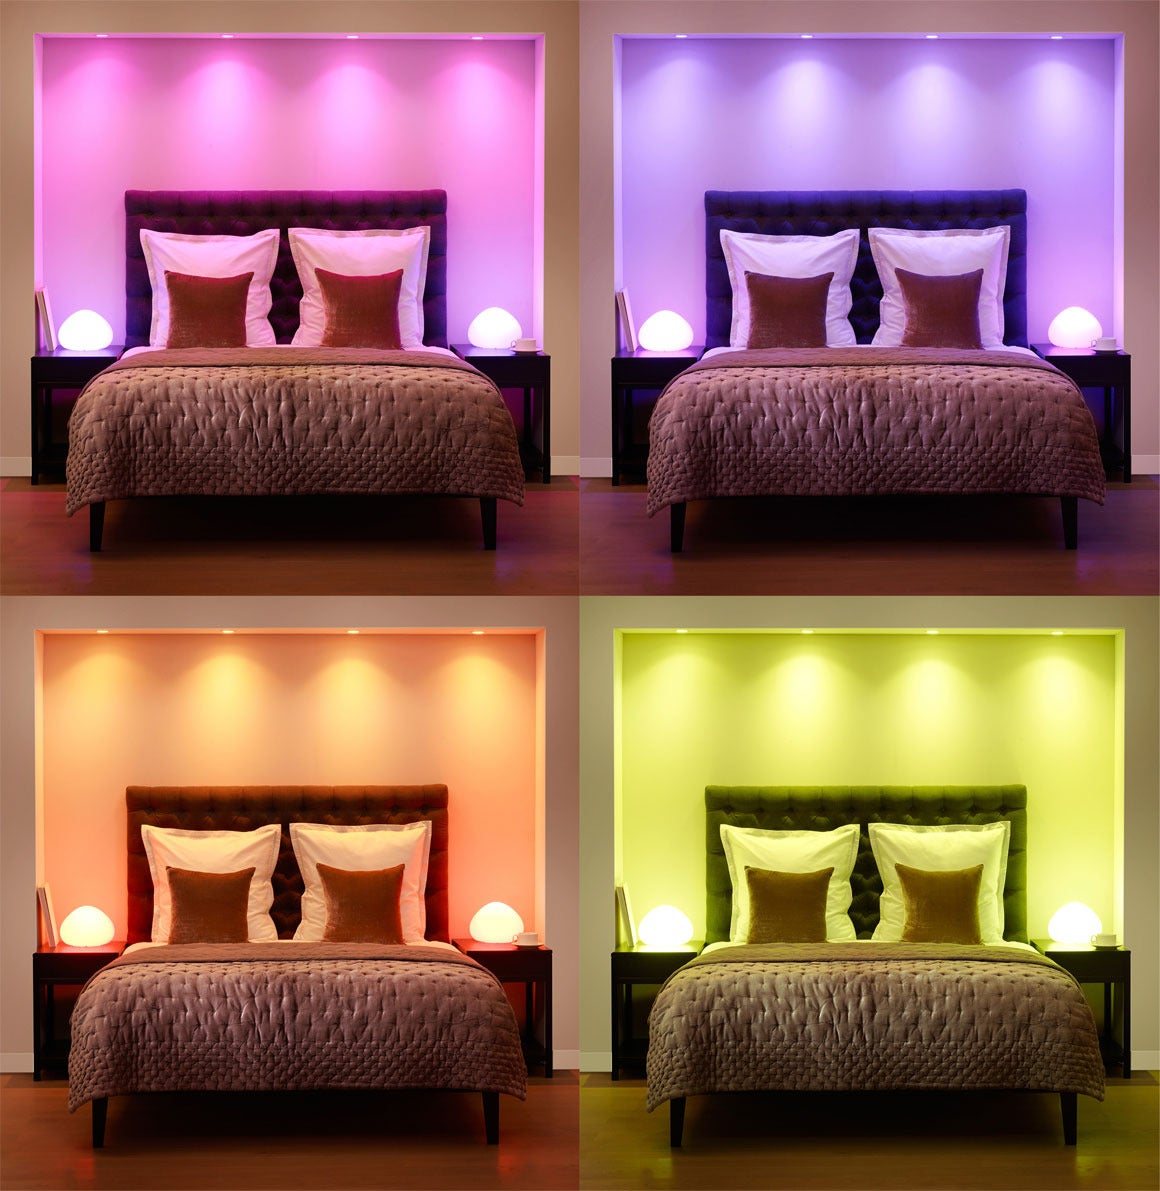 Home Lighting Design Ideas: How To Optimize Your Home Lighting Design Based On Color